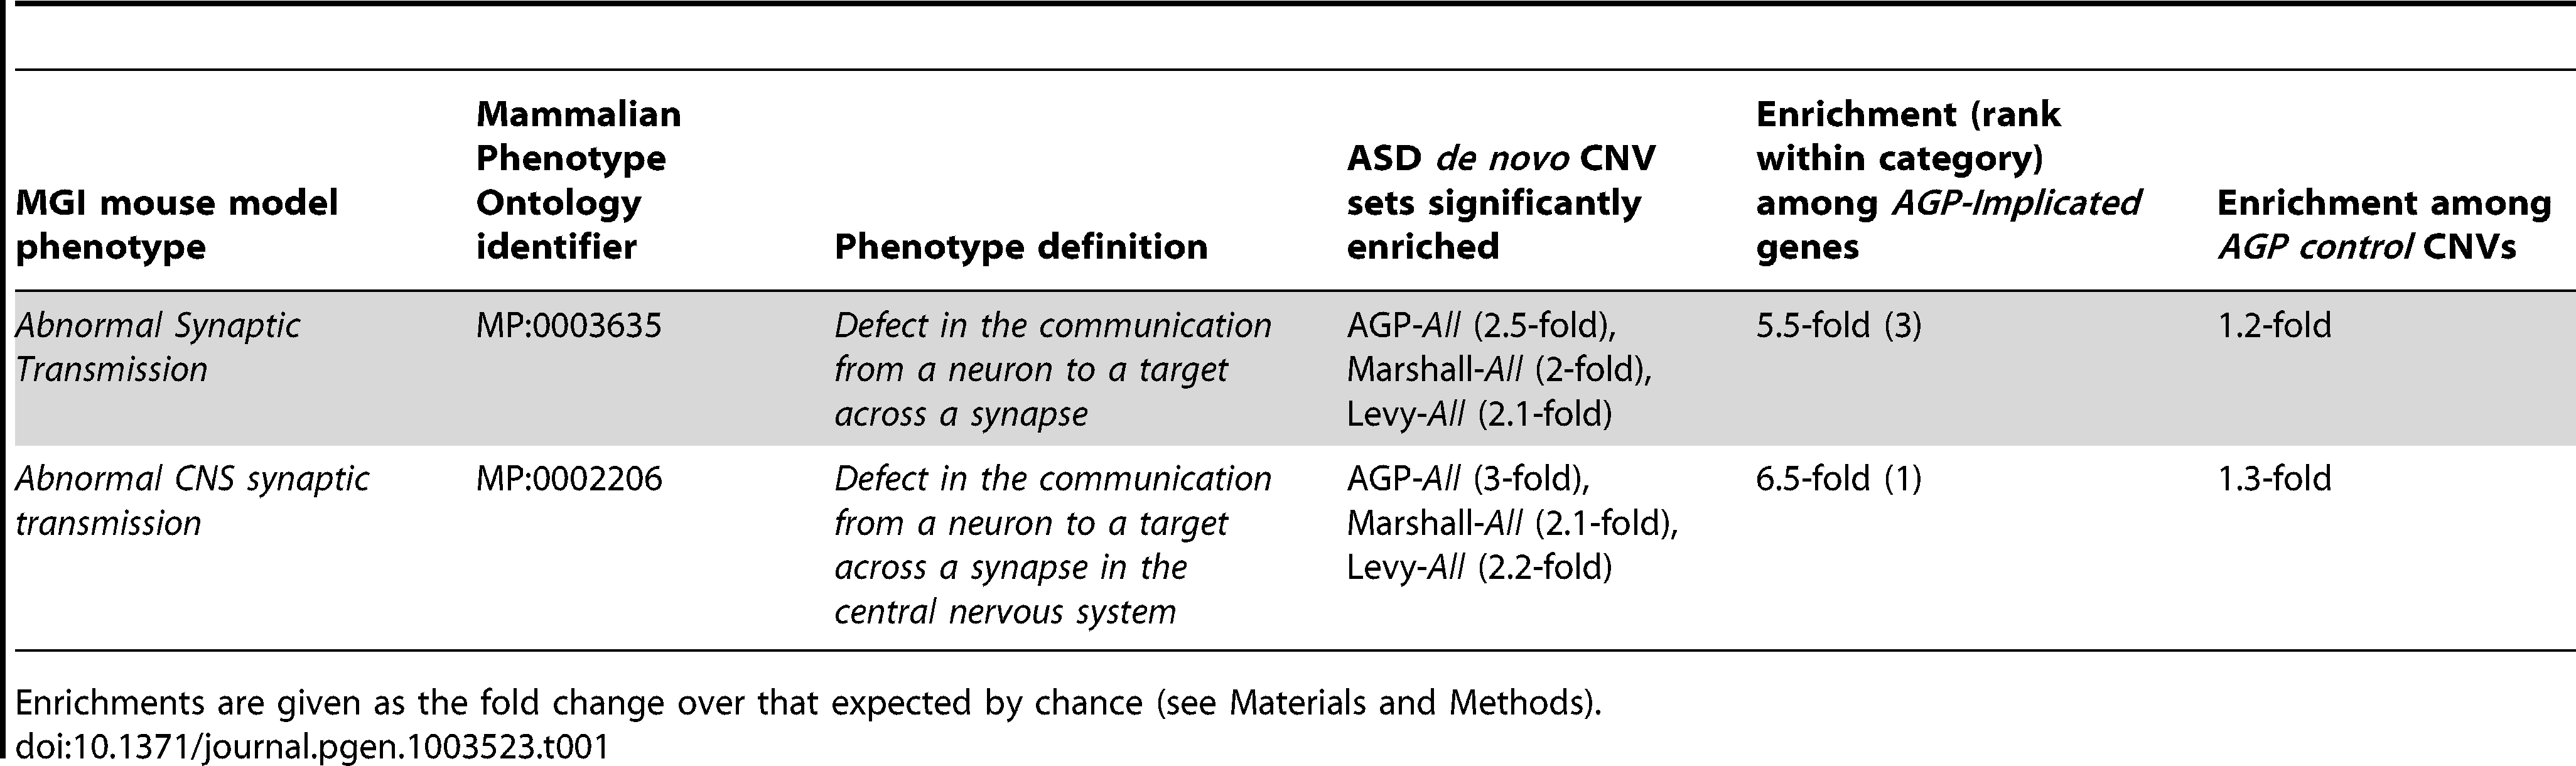 Triplicated mouse model phenotype associations among genes overlapped by sets of <i>de novo</i> CNVs identified in individuals with ASD.